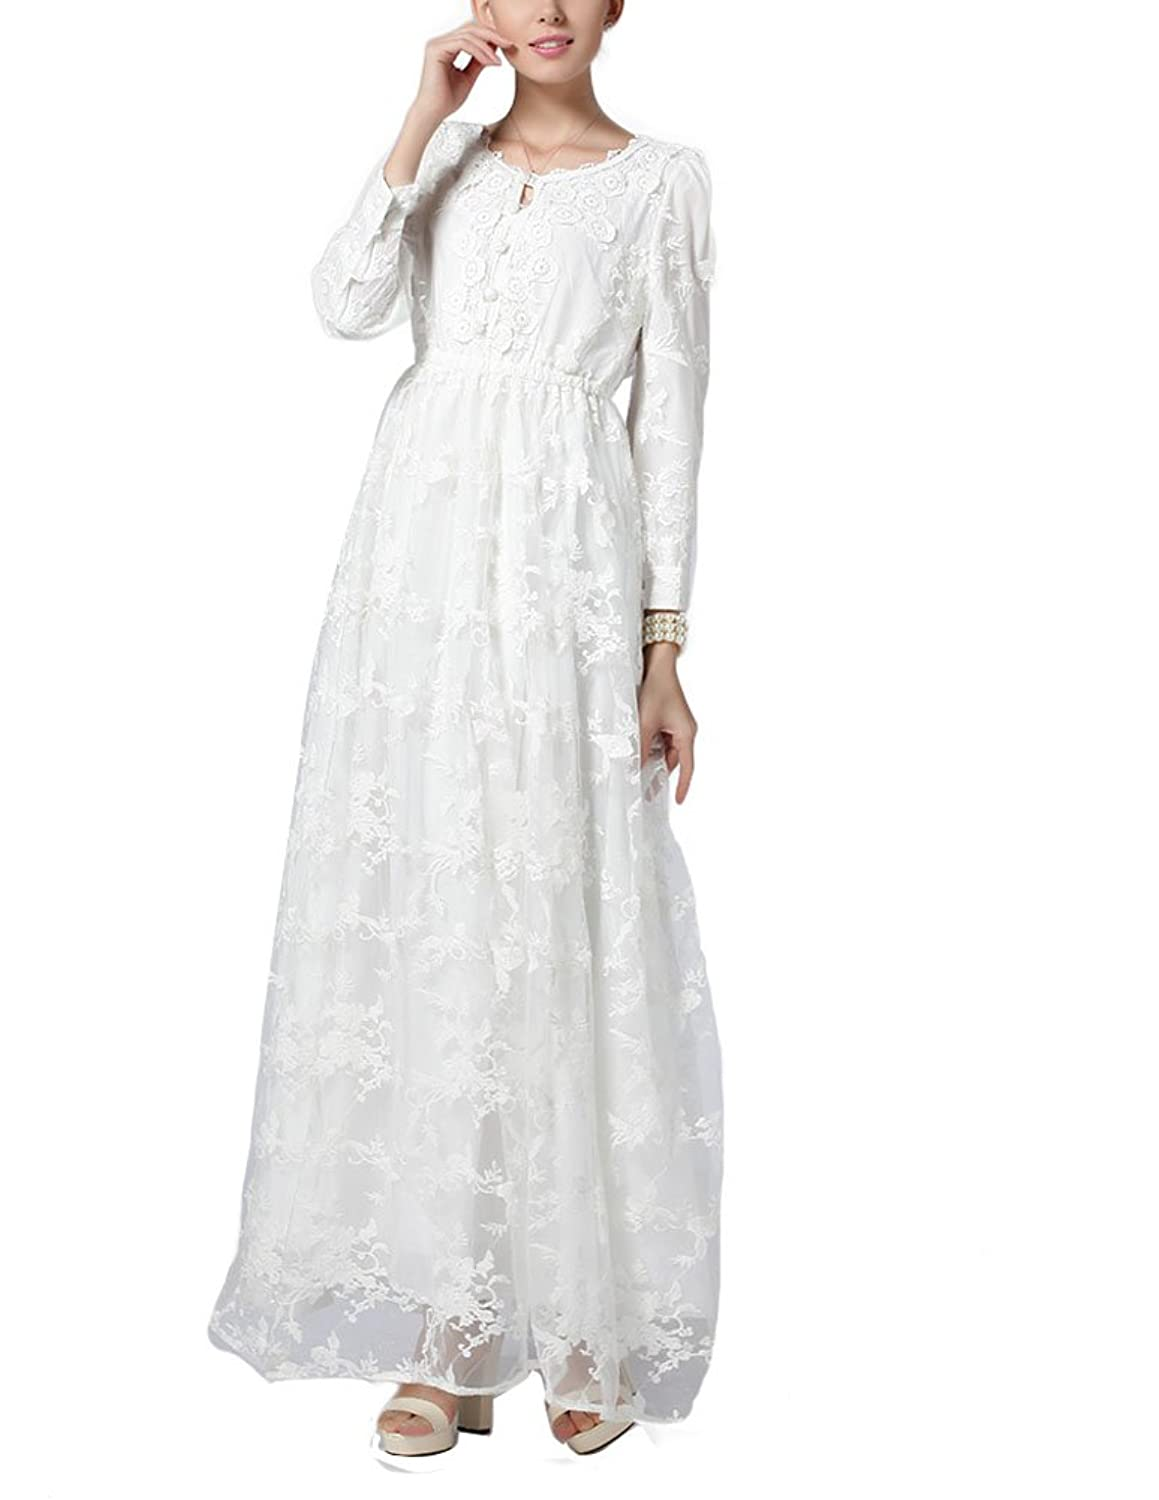 Edwardian Style Wedding Dresses Three Layers Crochet Embroidery Craft Lace Wedding Dress LYQ0156 $49.99 AT vintagedancer.com